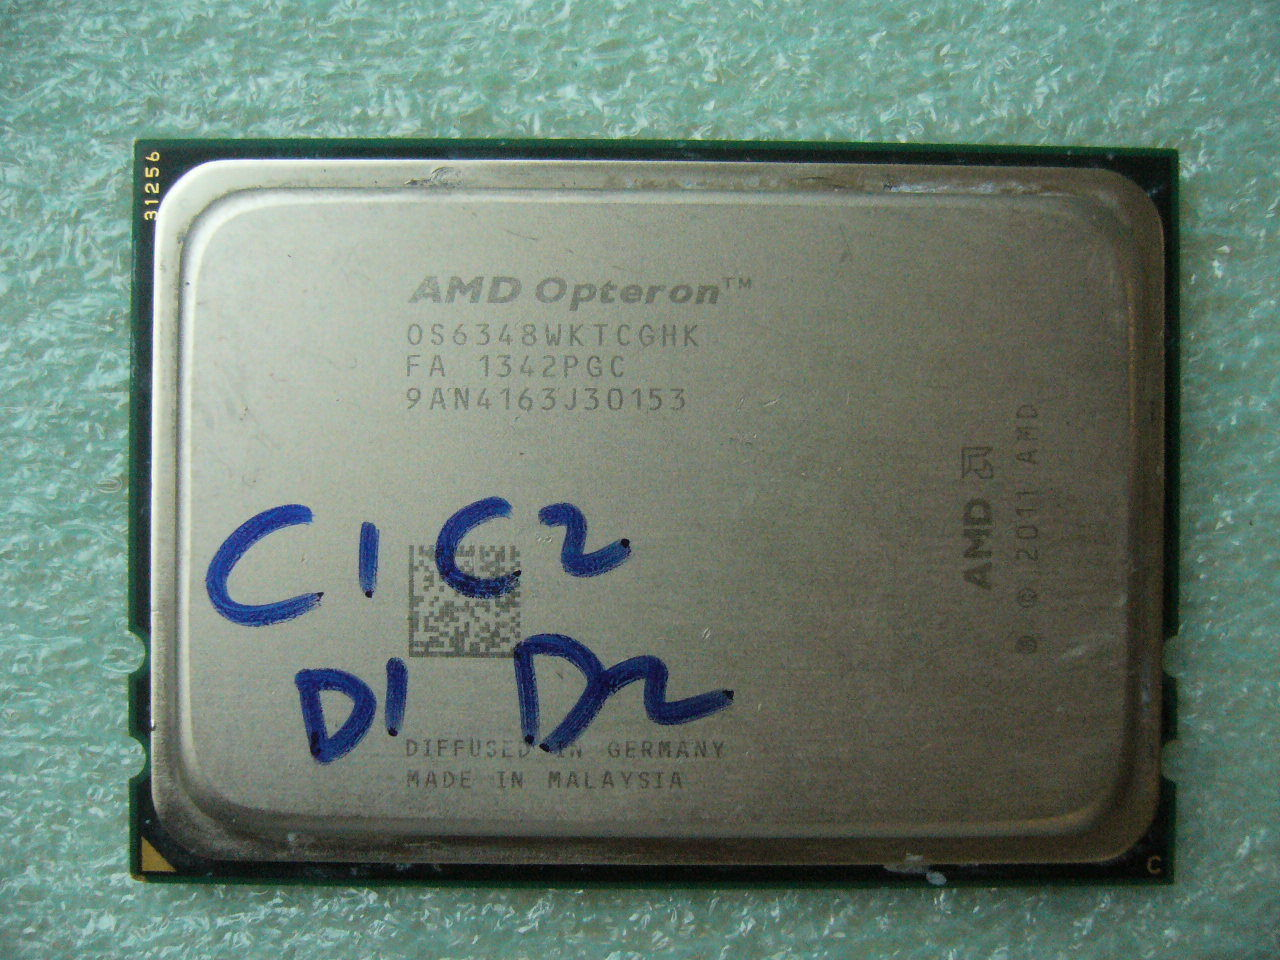 QTY 1x AMD Opteron 6348 2.8GHz Twelve Core OS6348WKTCGHK CPU Tested G34 Damaged - $104.00